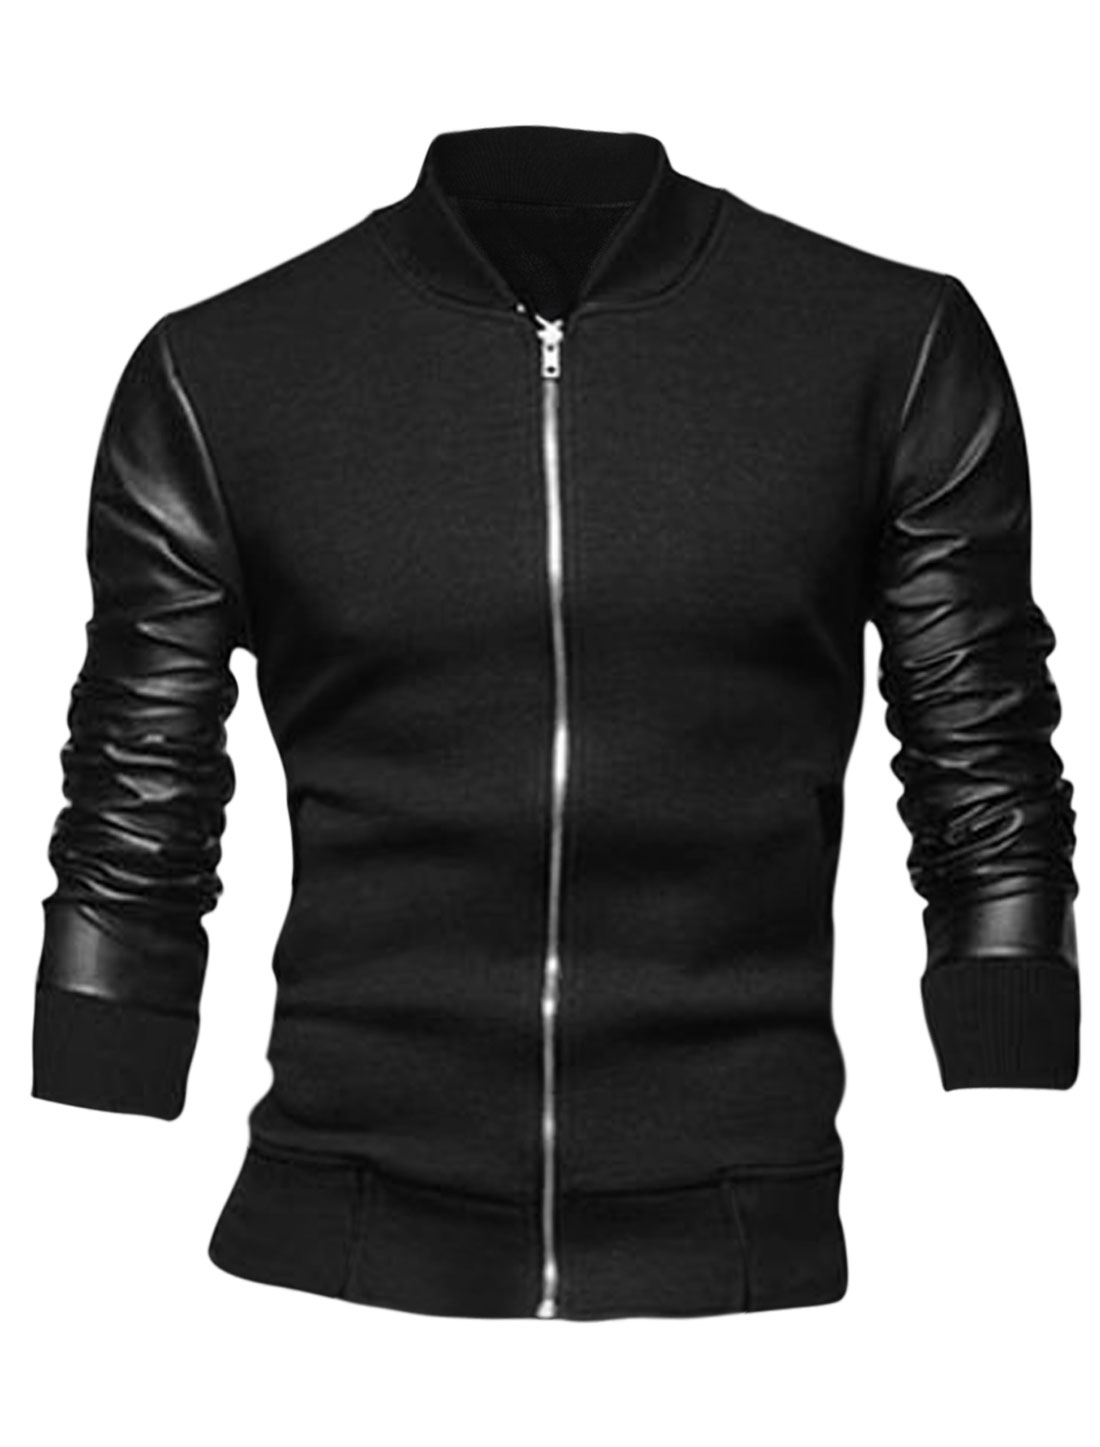 Men Black Zip Fly Front Pockets Splice Ribbed Cuffs Jacket S